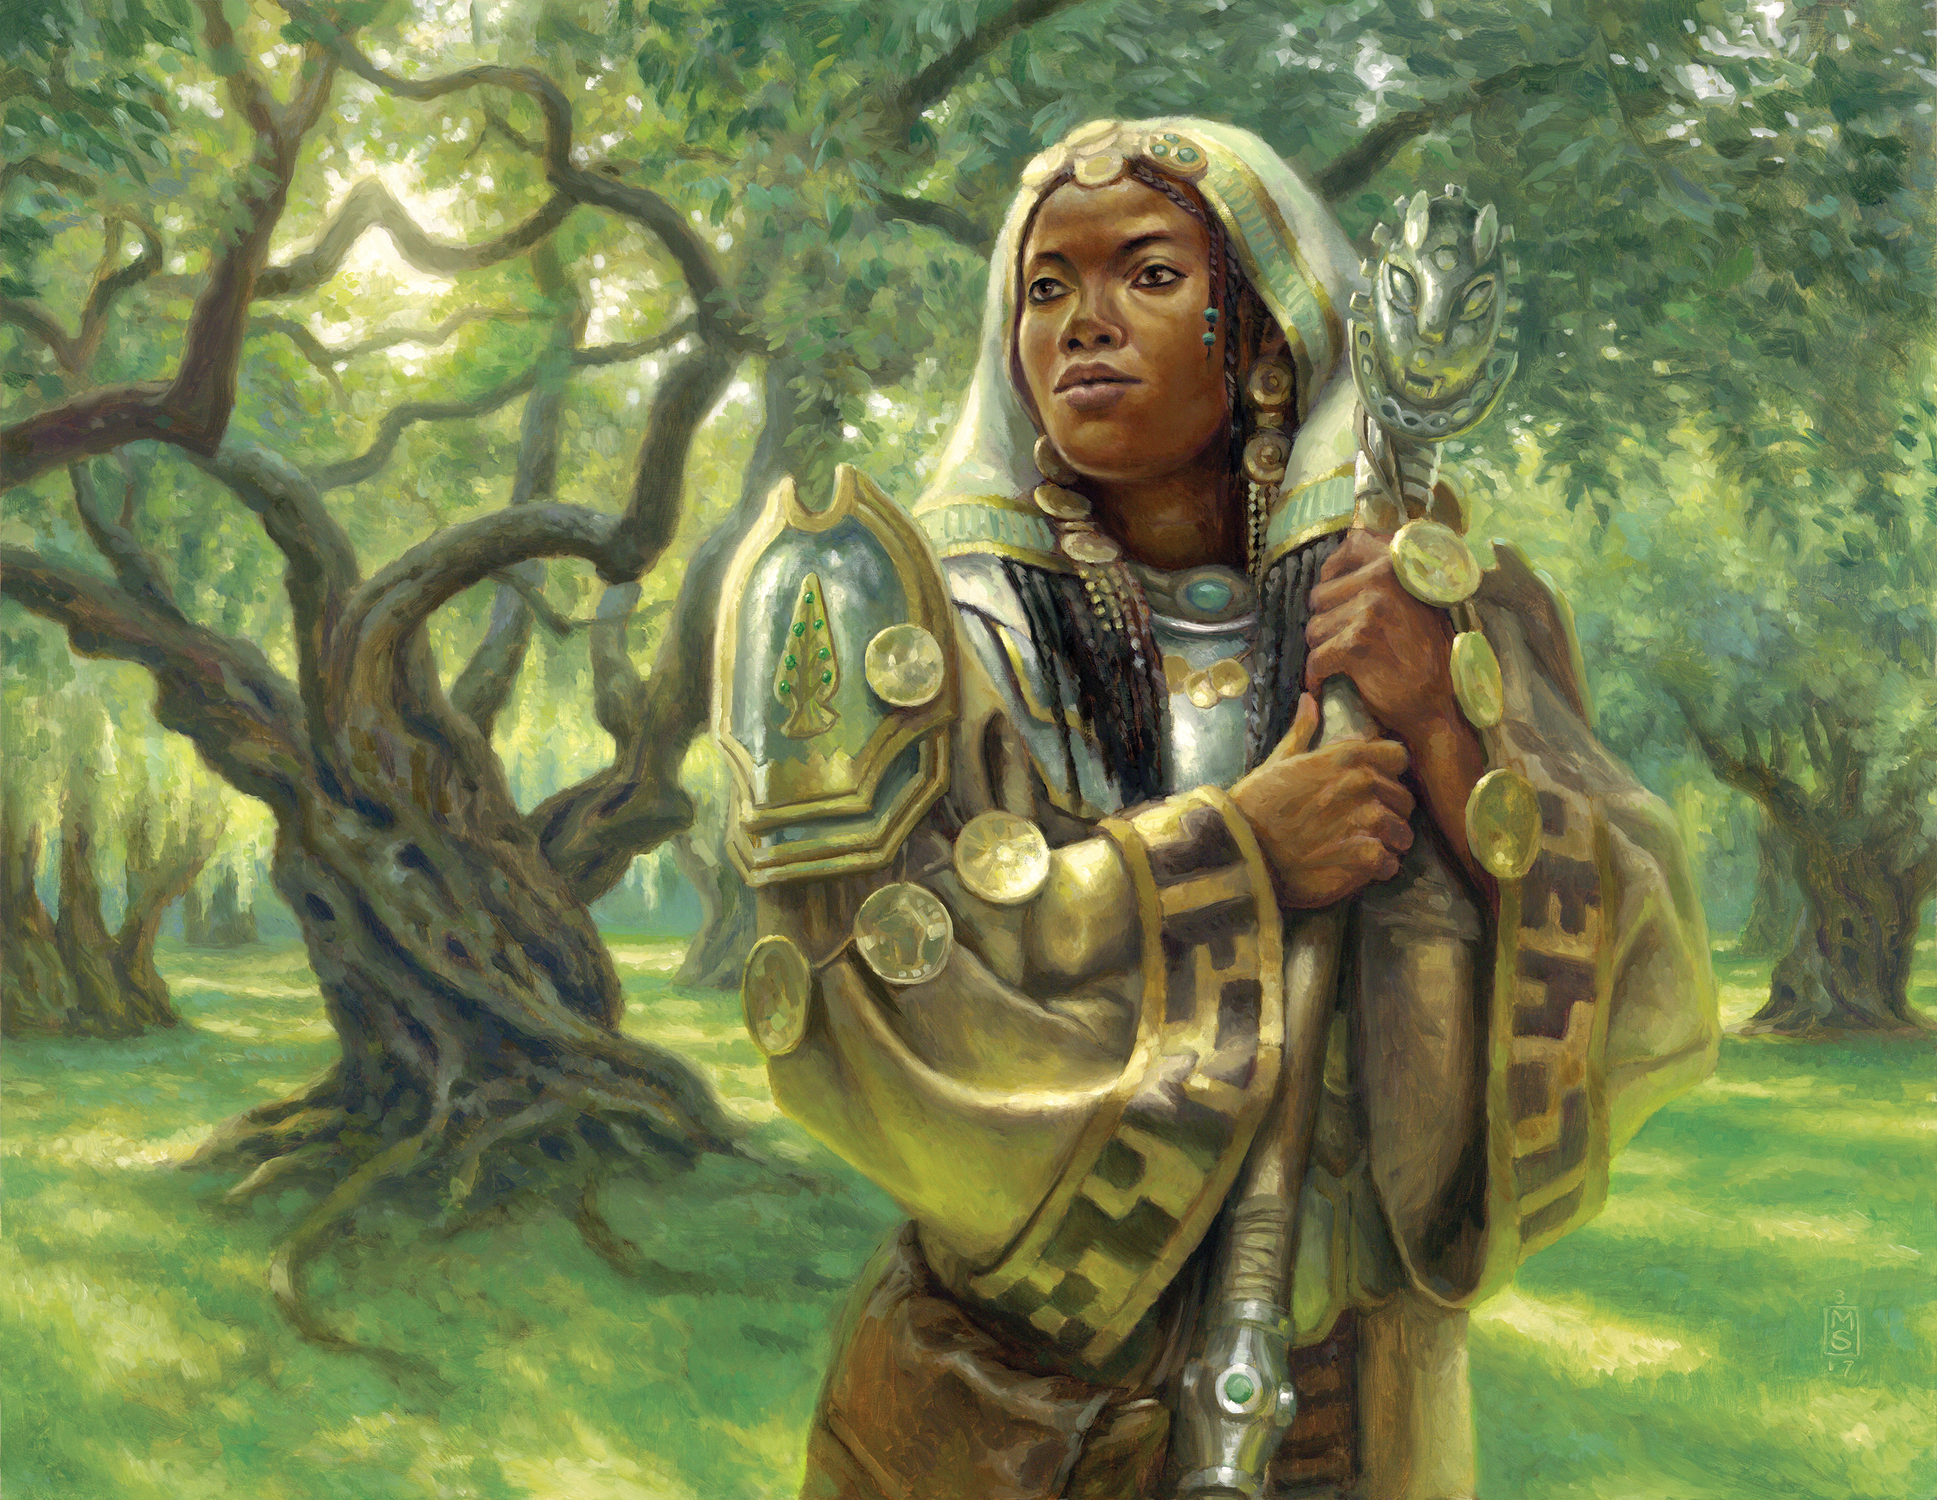 Noble Hierarch Artwork by Matthew Stewart